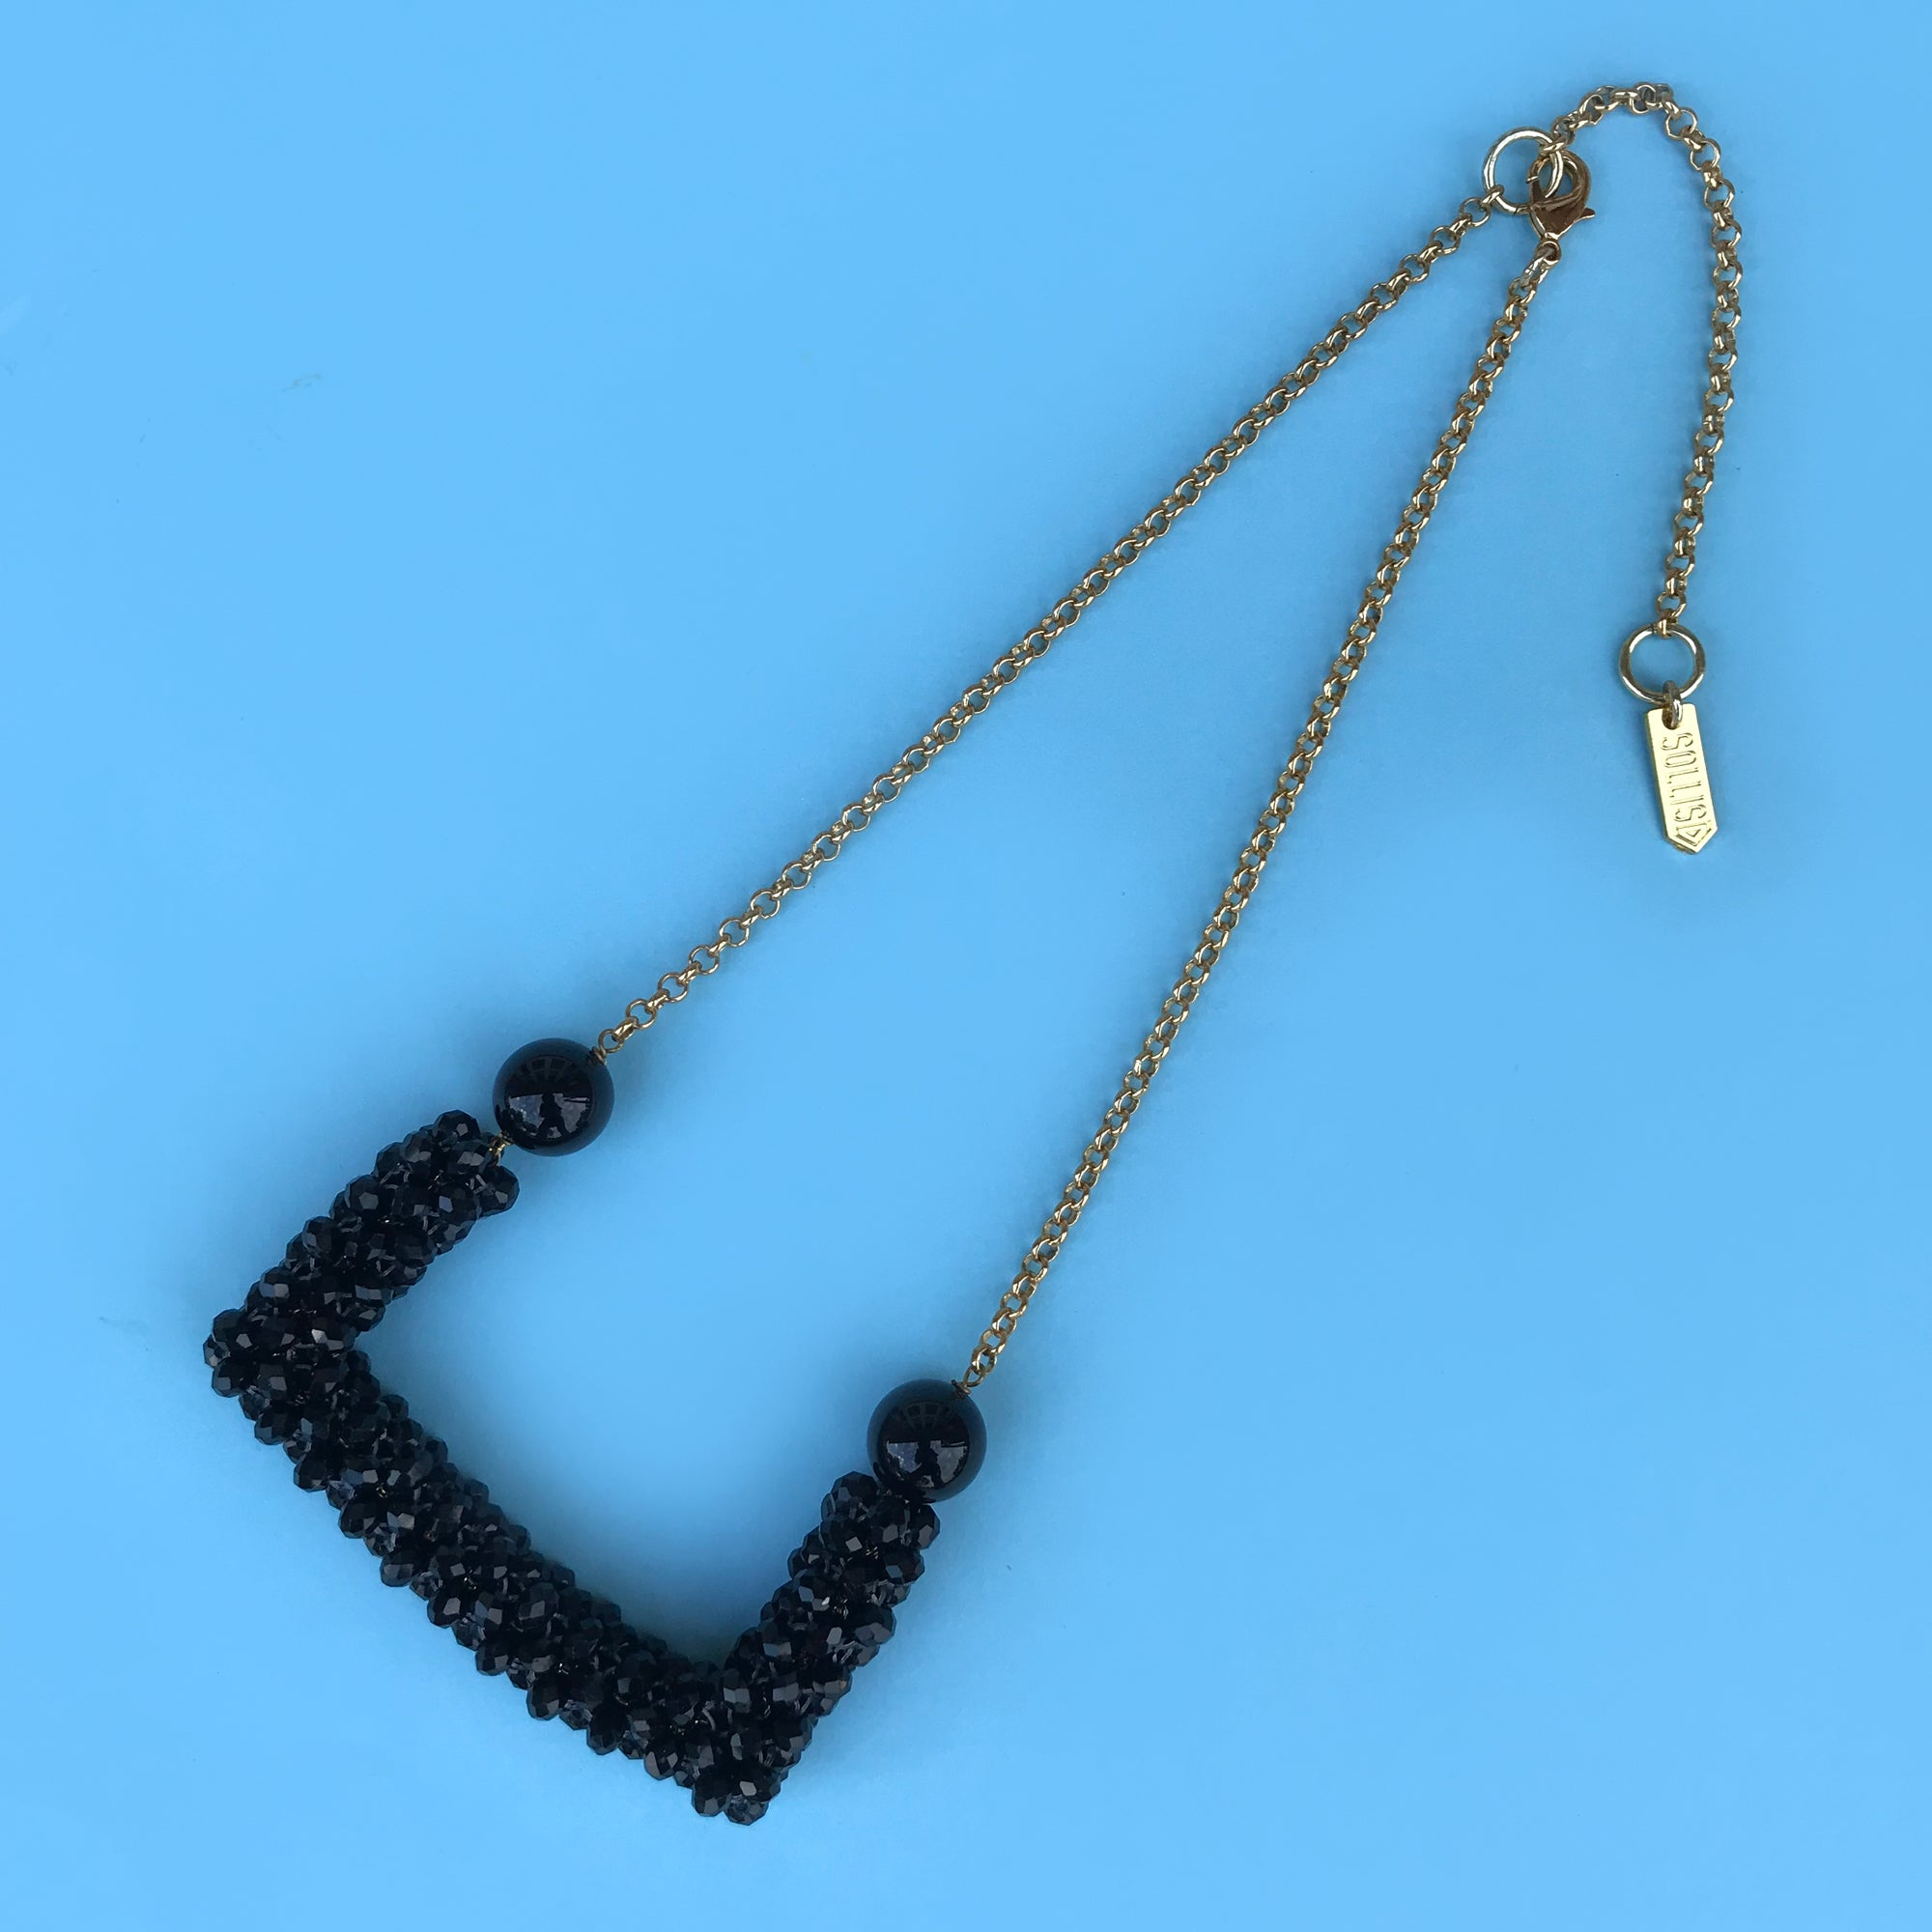 RECO necklace